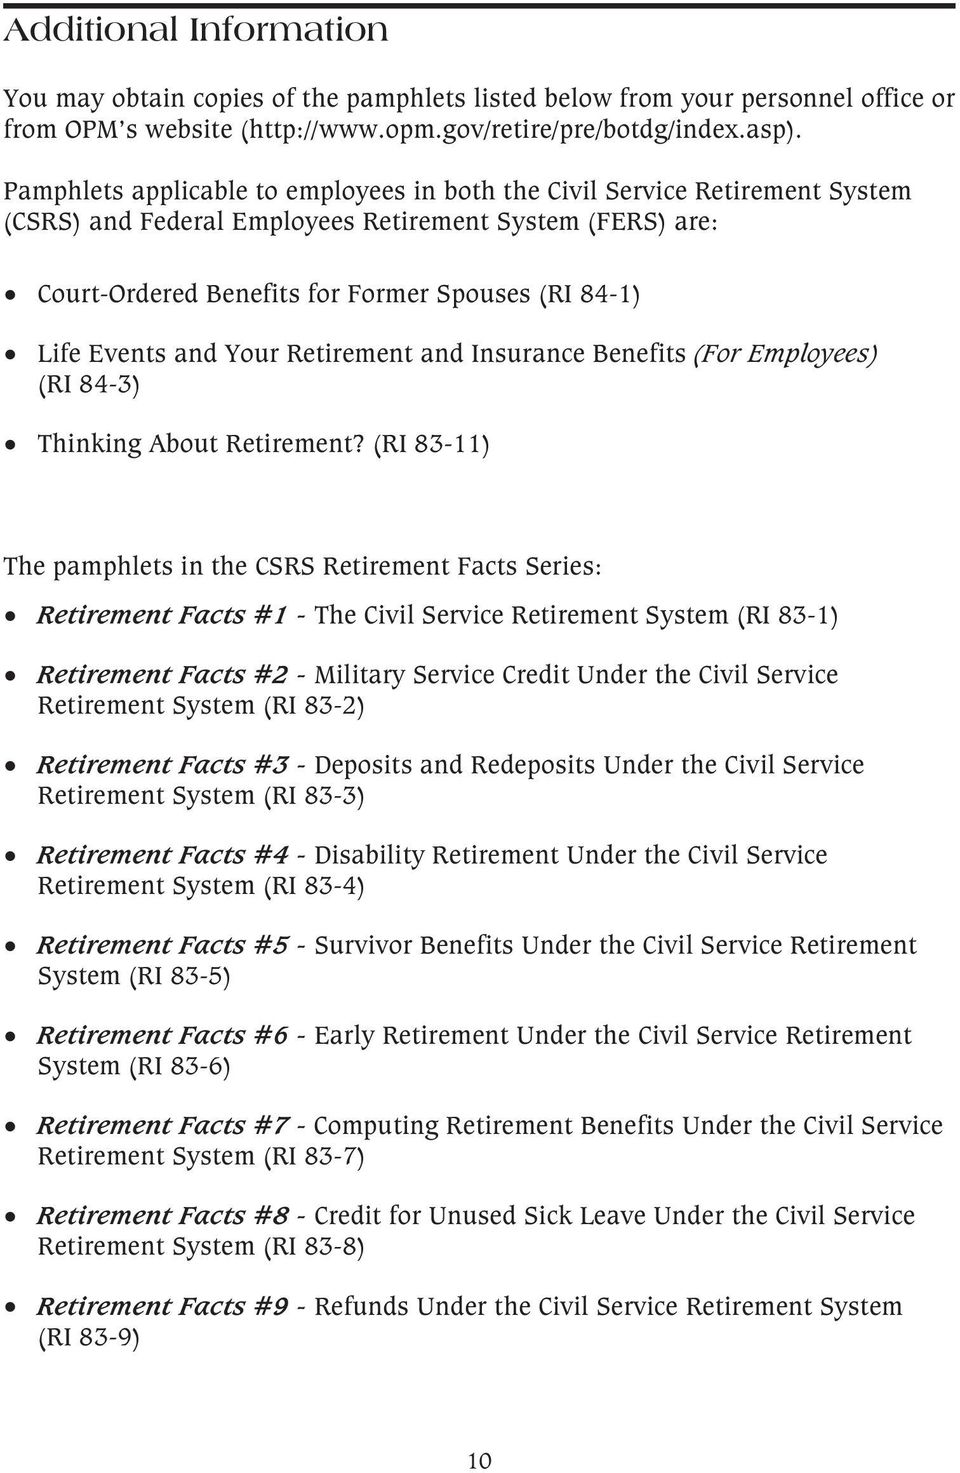 Events and Your Retirement and Insurance Benefits (For Employees) (RI 84-3) Thinking About Retirement?